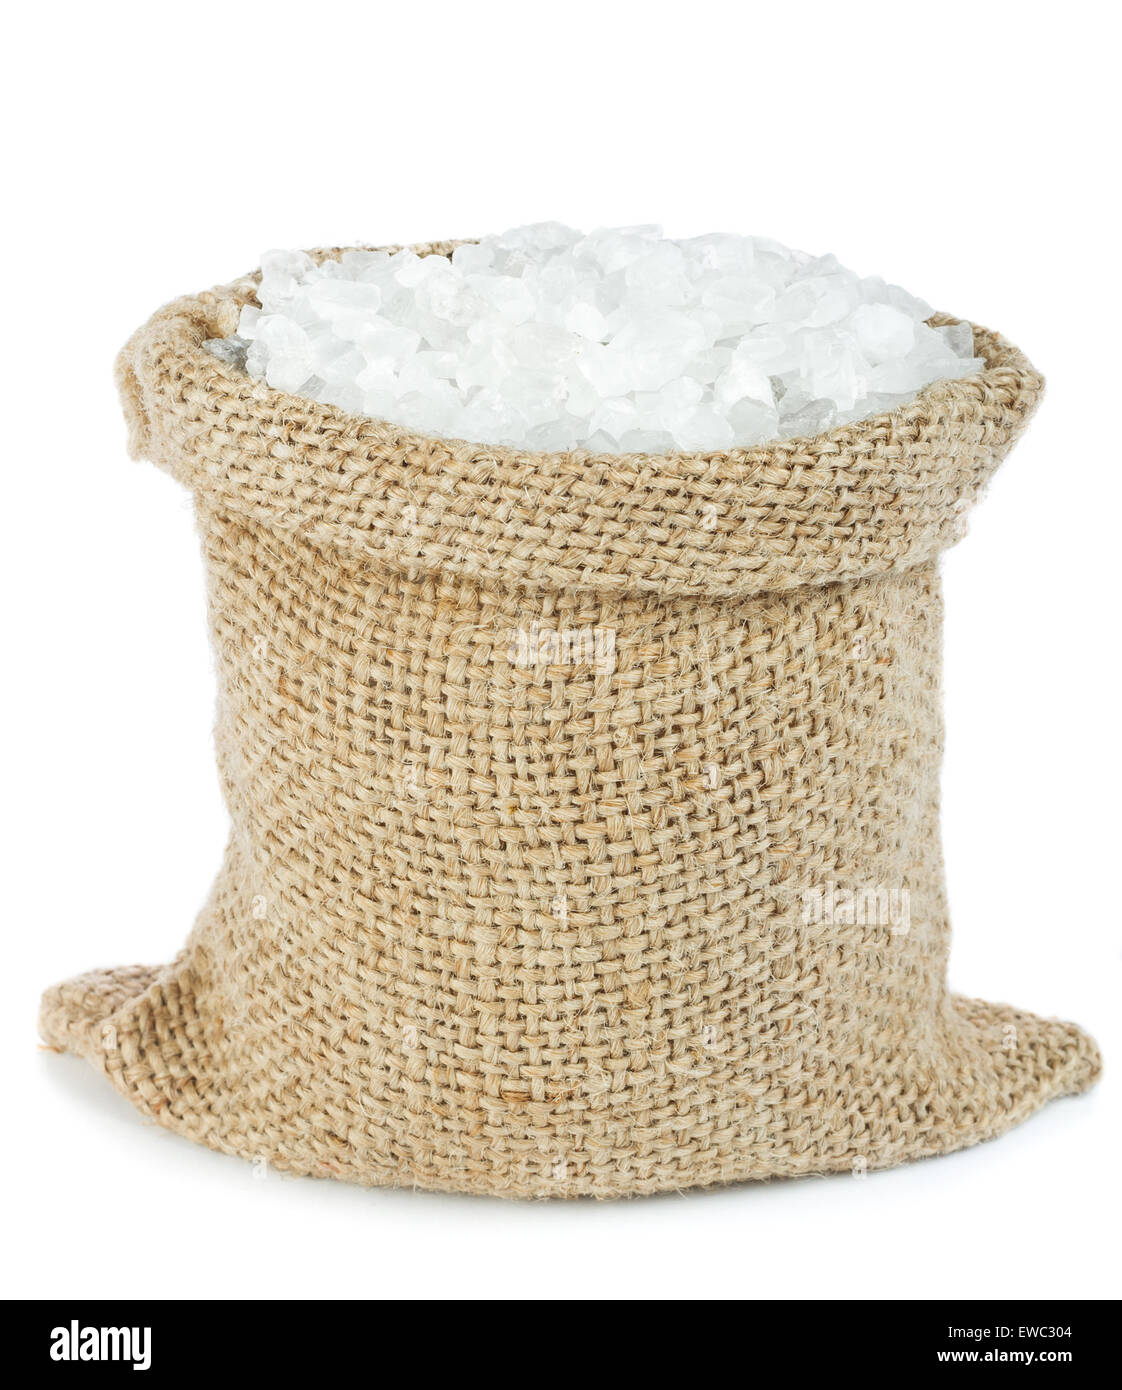 Sea salt crystals in burlap bag - Stock Image